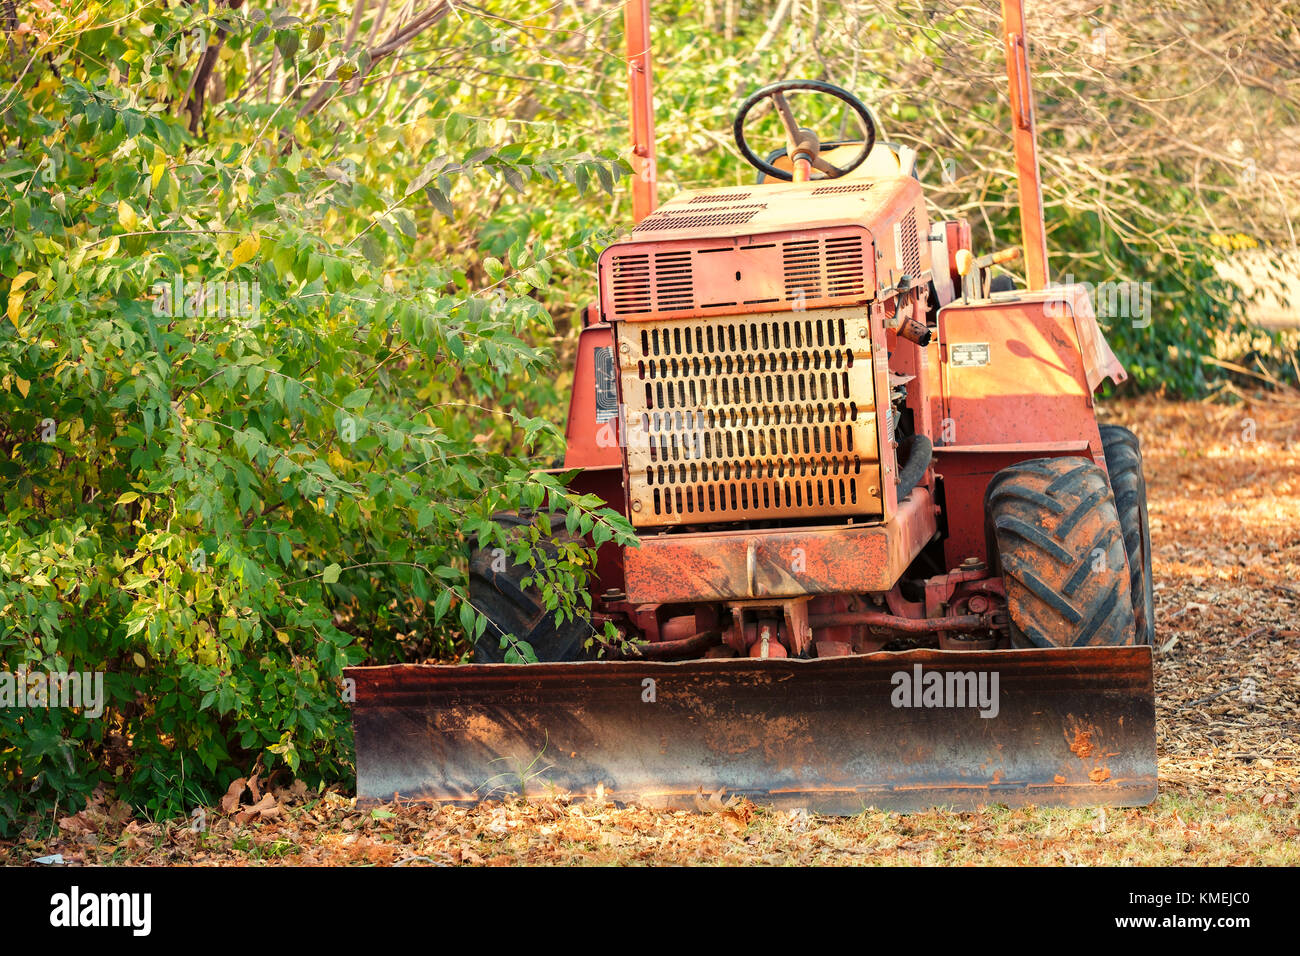 Ditch Witch Trenching Machine Stock Photos & Ditch Witch Trenching